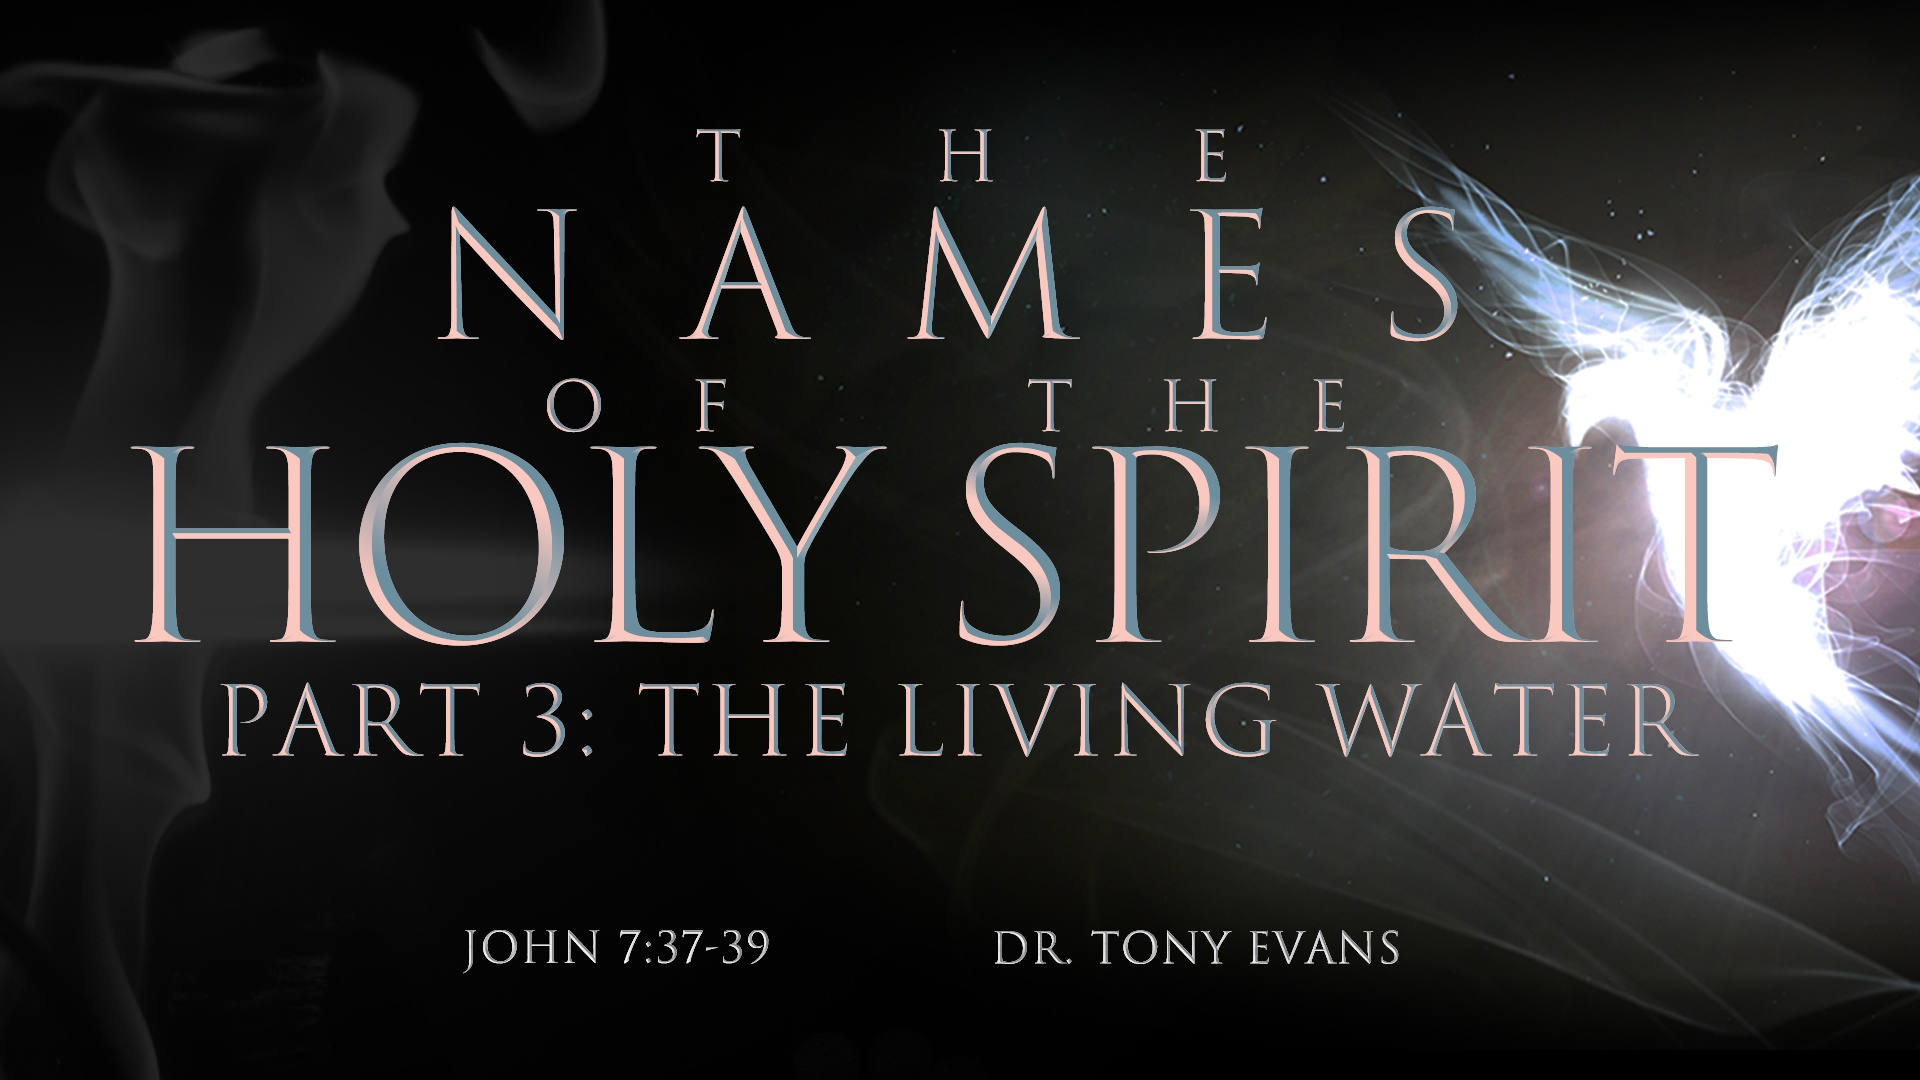 """The Living Water"" by Dr. Tony Evans (series: Names of the Holy Spirit)"